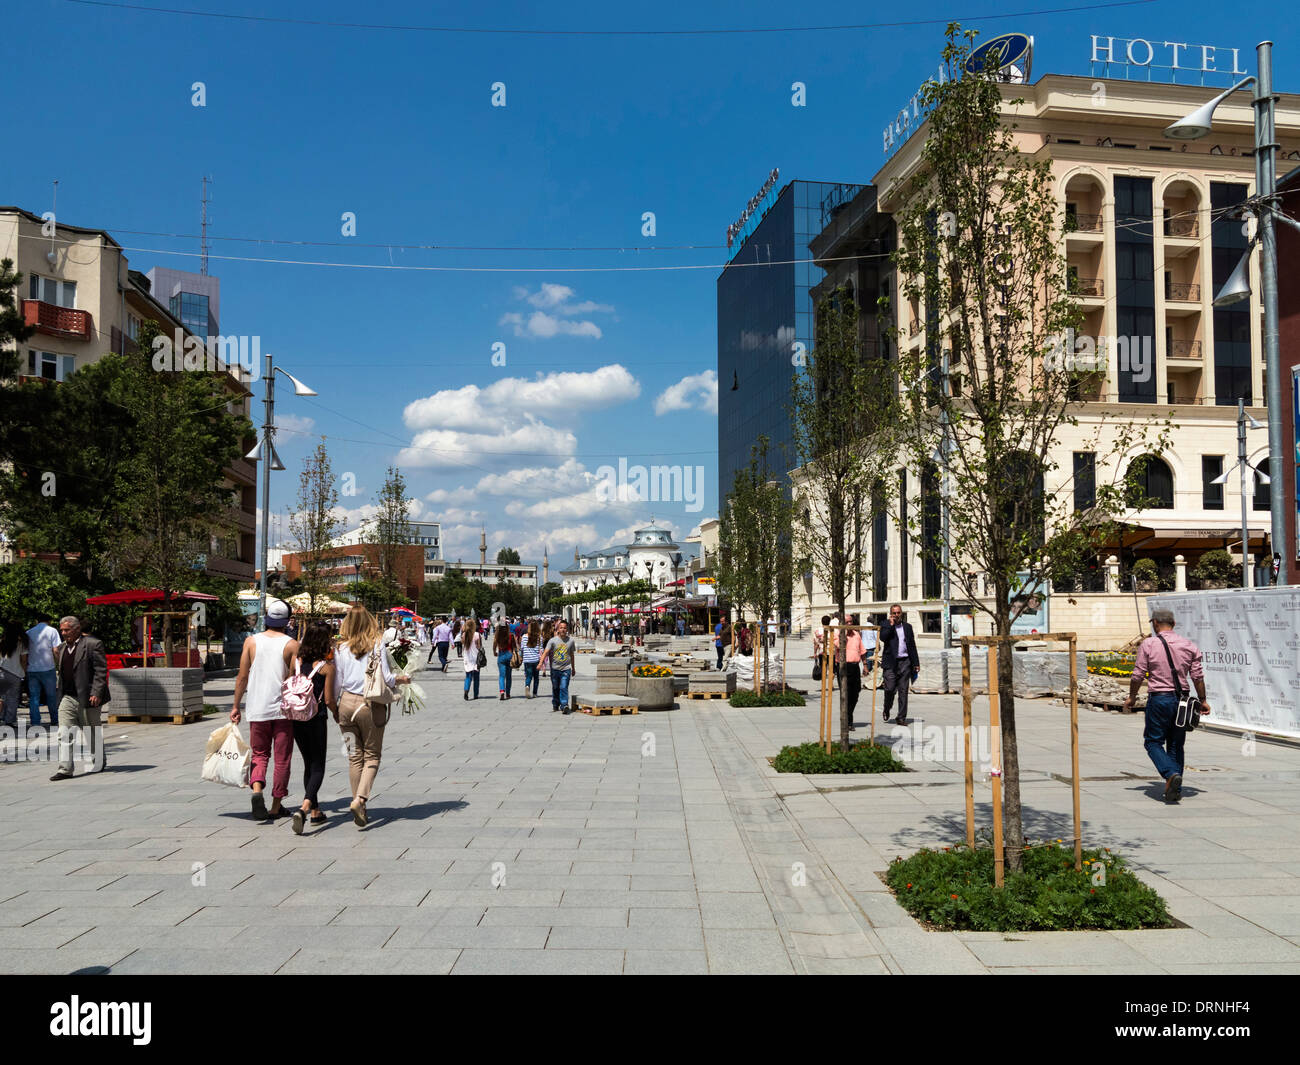 Pristina, Kosovo, Europe - Mother Teresa Square in Pristina city centre - Stock Image